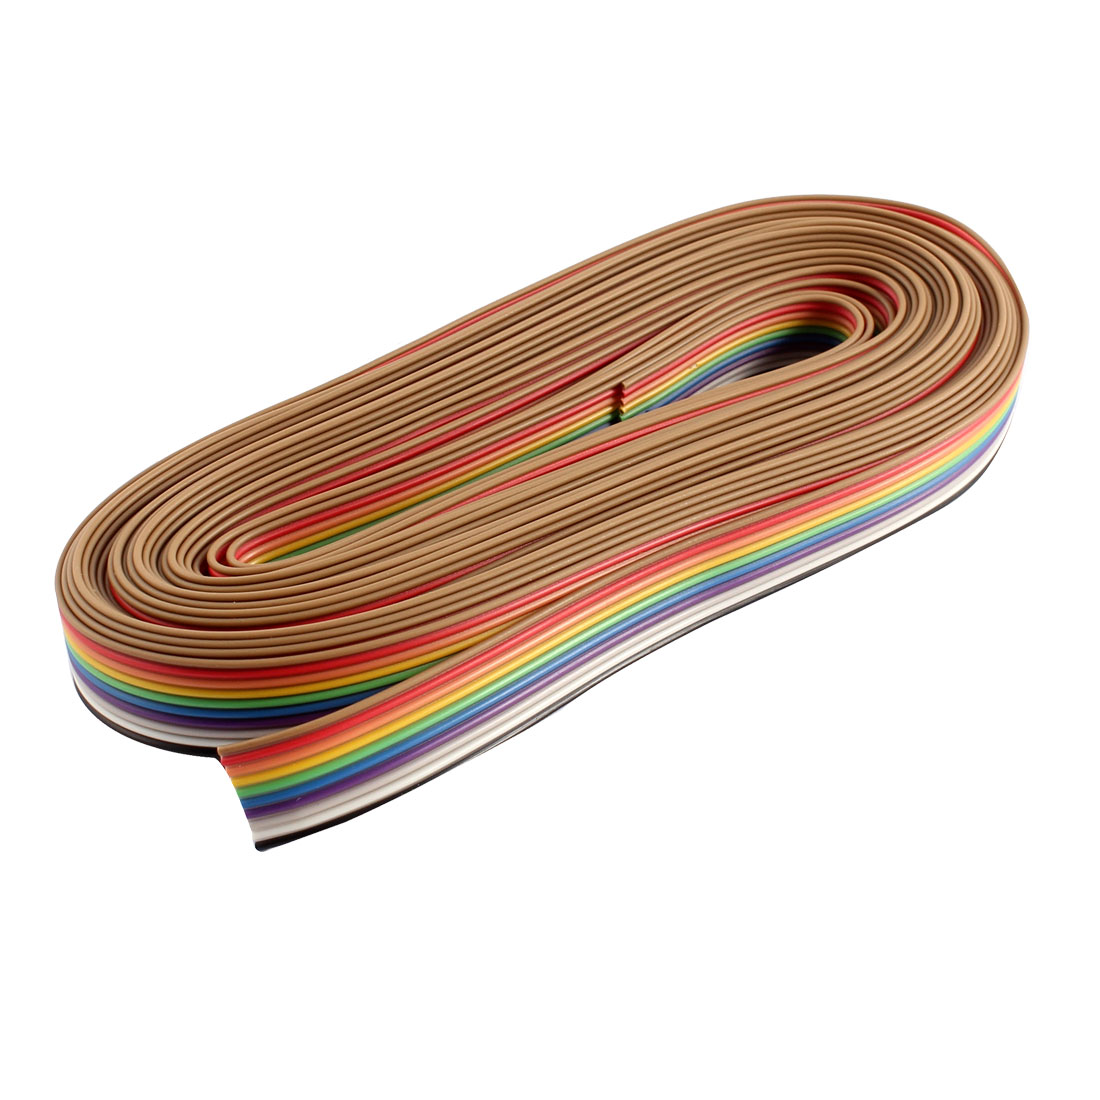 Uxcell 2 54mm 16pin 16 Way F Connector Idc Rainbow Flat Ribbon Cable Schematic 20ft 6m Long 10 Pin Color Wire 127